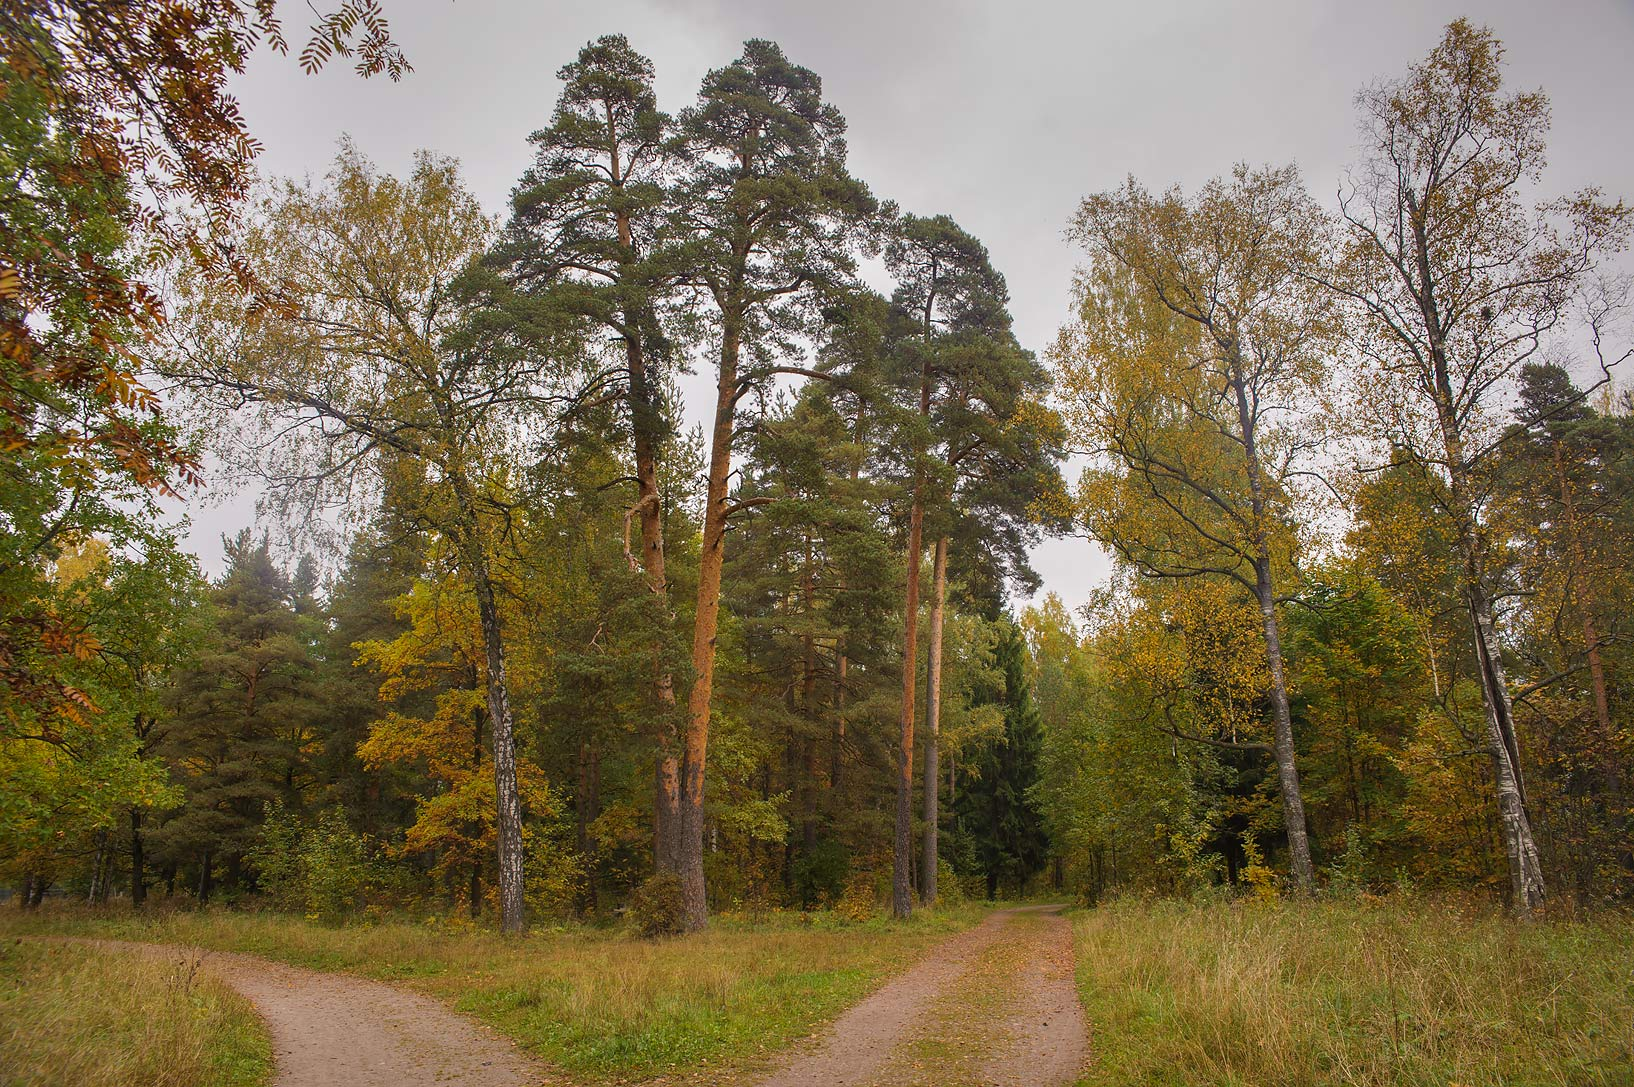 Roads north from the Farm (Ferma) in Gatchina, a suburb of St.Petersburg. Russia